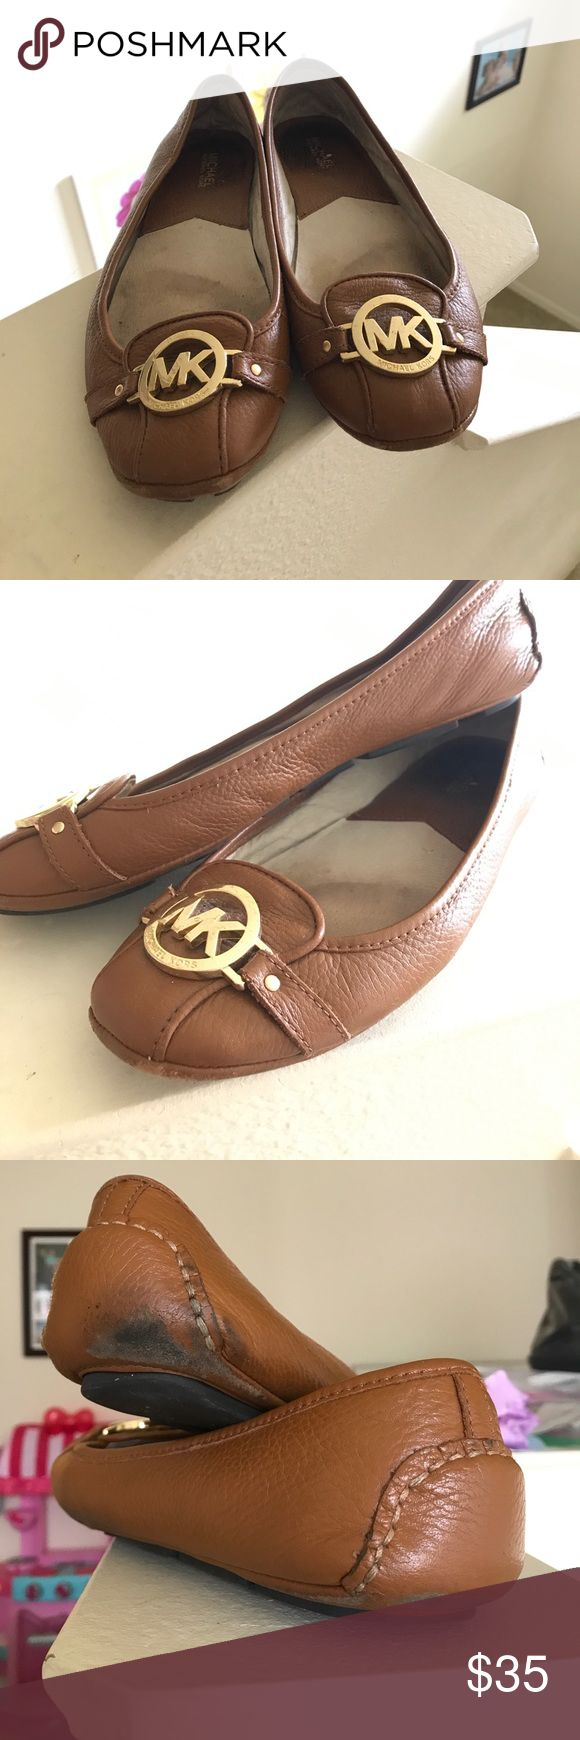 Michael Kors brown ballet logo flats These flats are a staple item in my closet. I've lost some weight and my shoe size has gone down. There is wear and tear on these shoes so please look at the pictures. I am willing to negotiate reasonable offers. Originally bought at Neiman Marcus for $99. Michael Kors Shoes Flats & Loafers